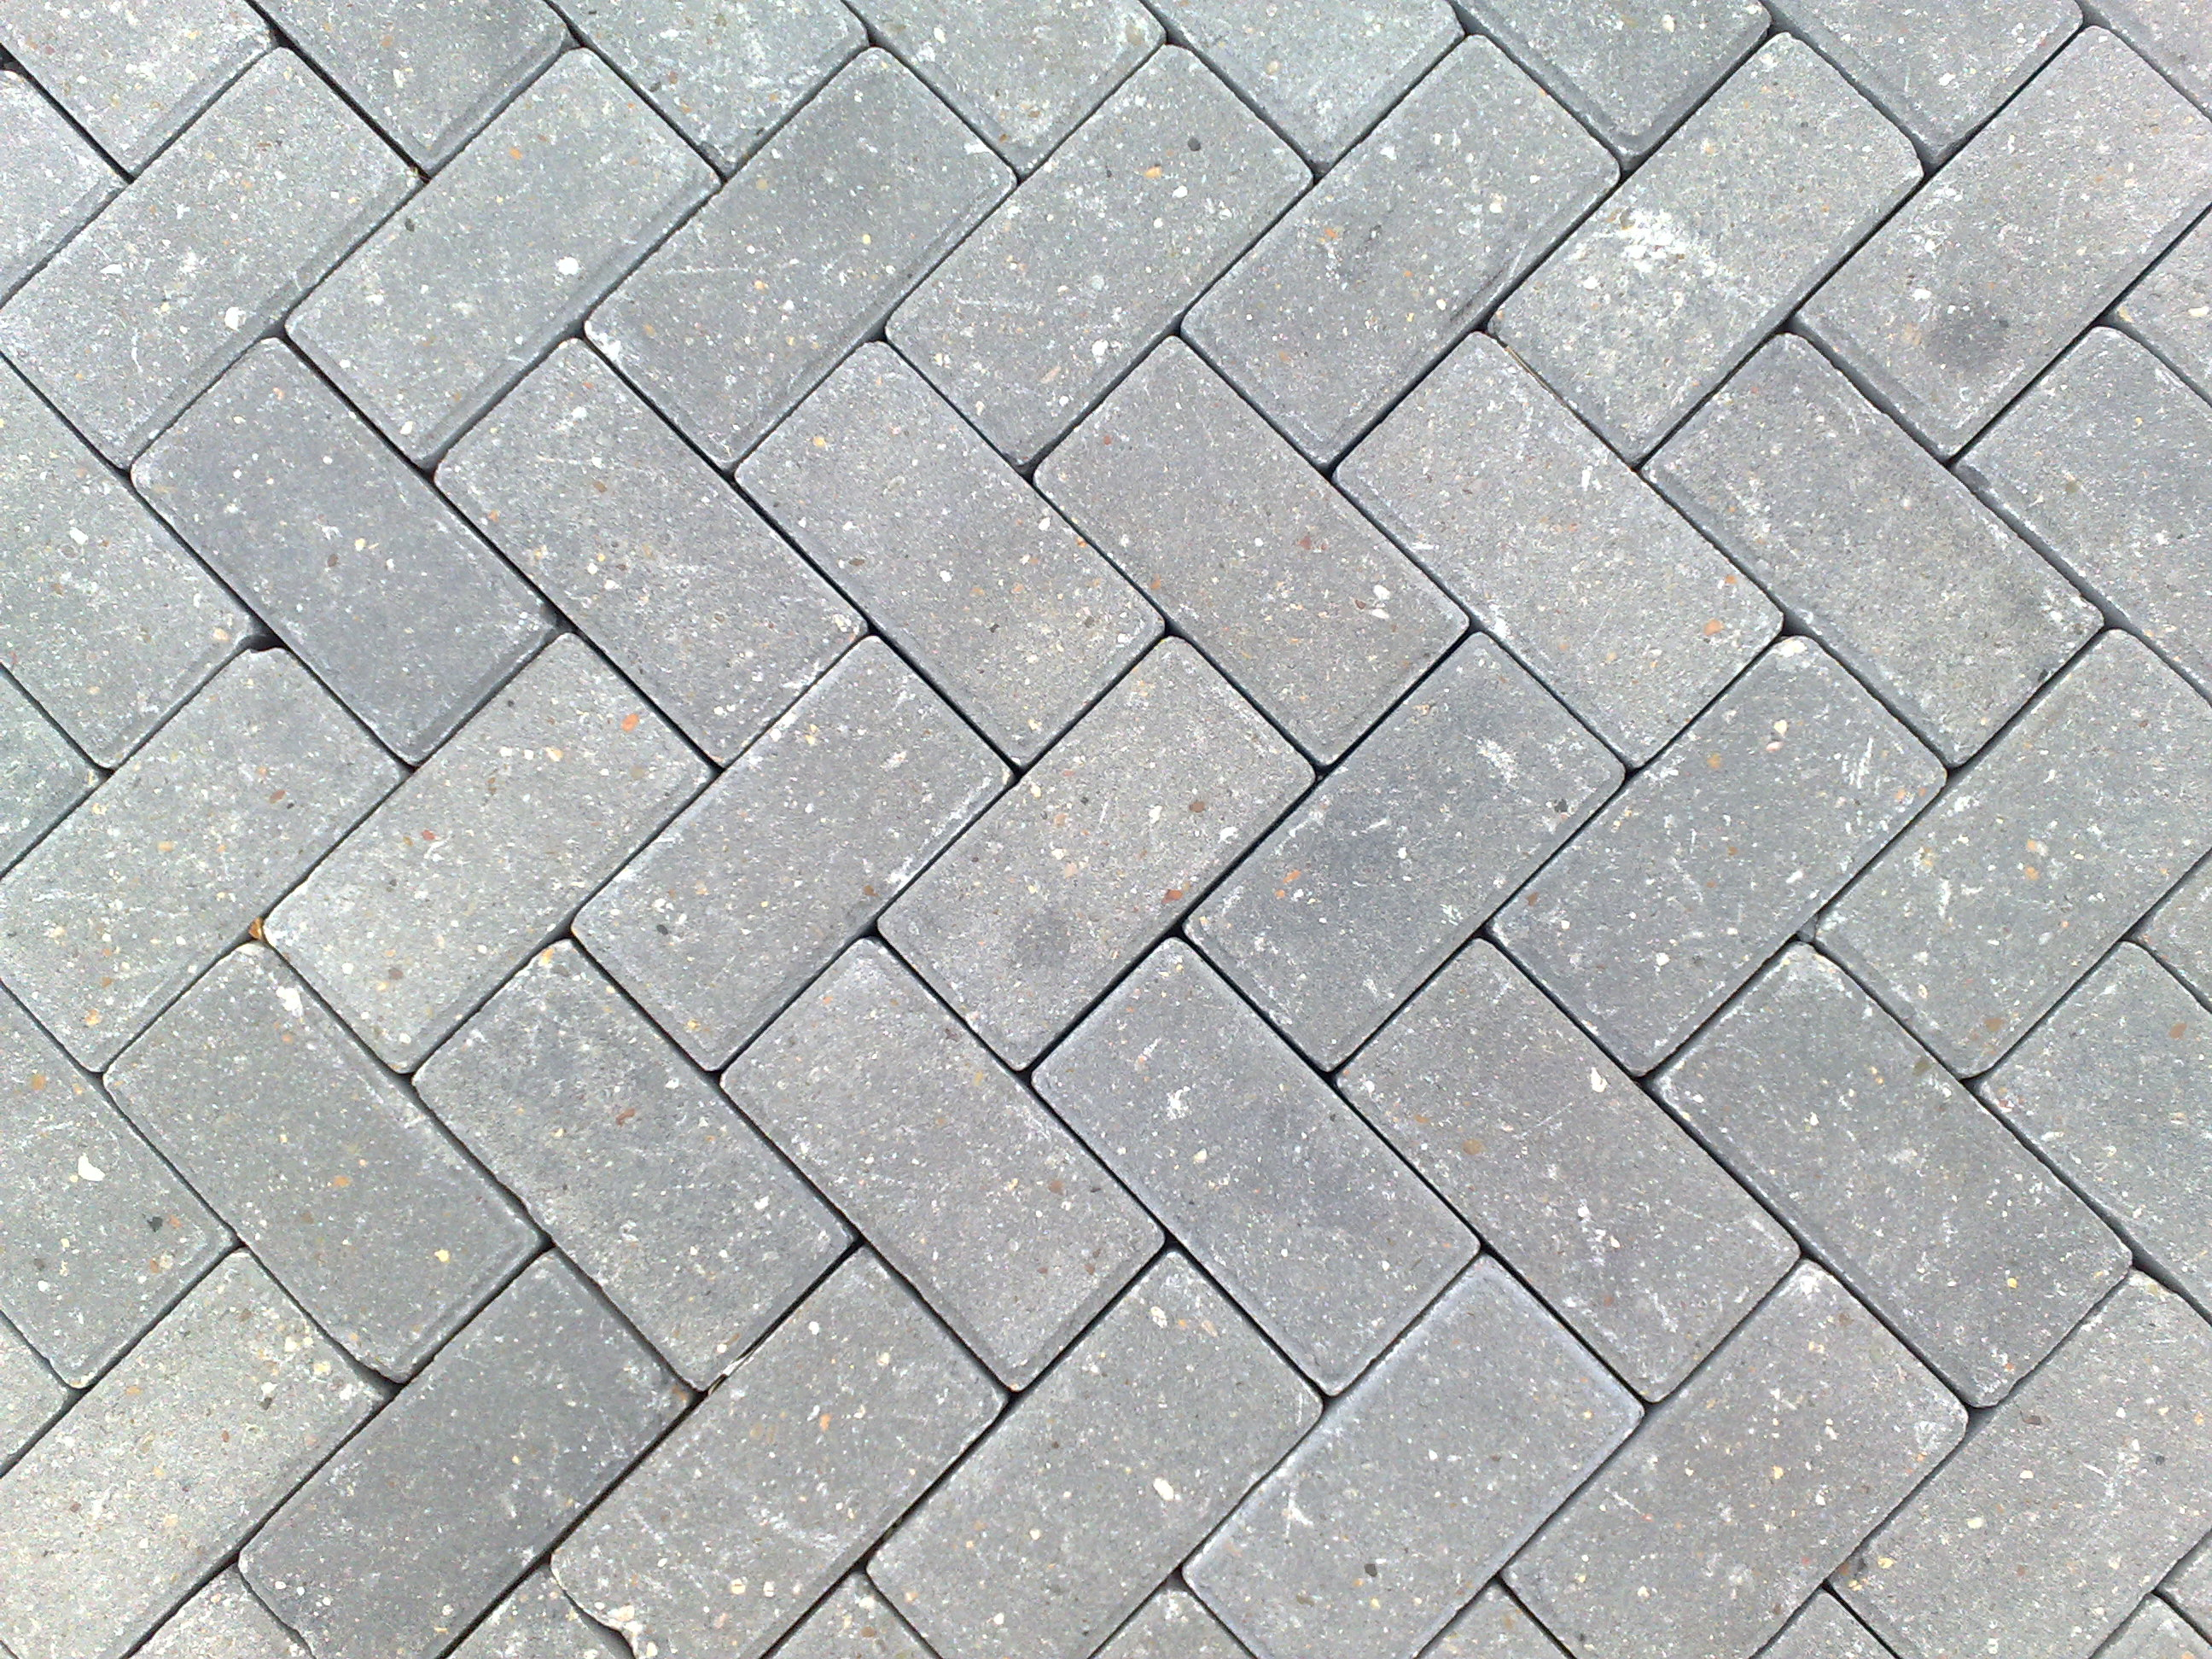 Brick Texture In Png image #23885